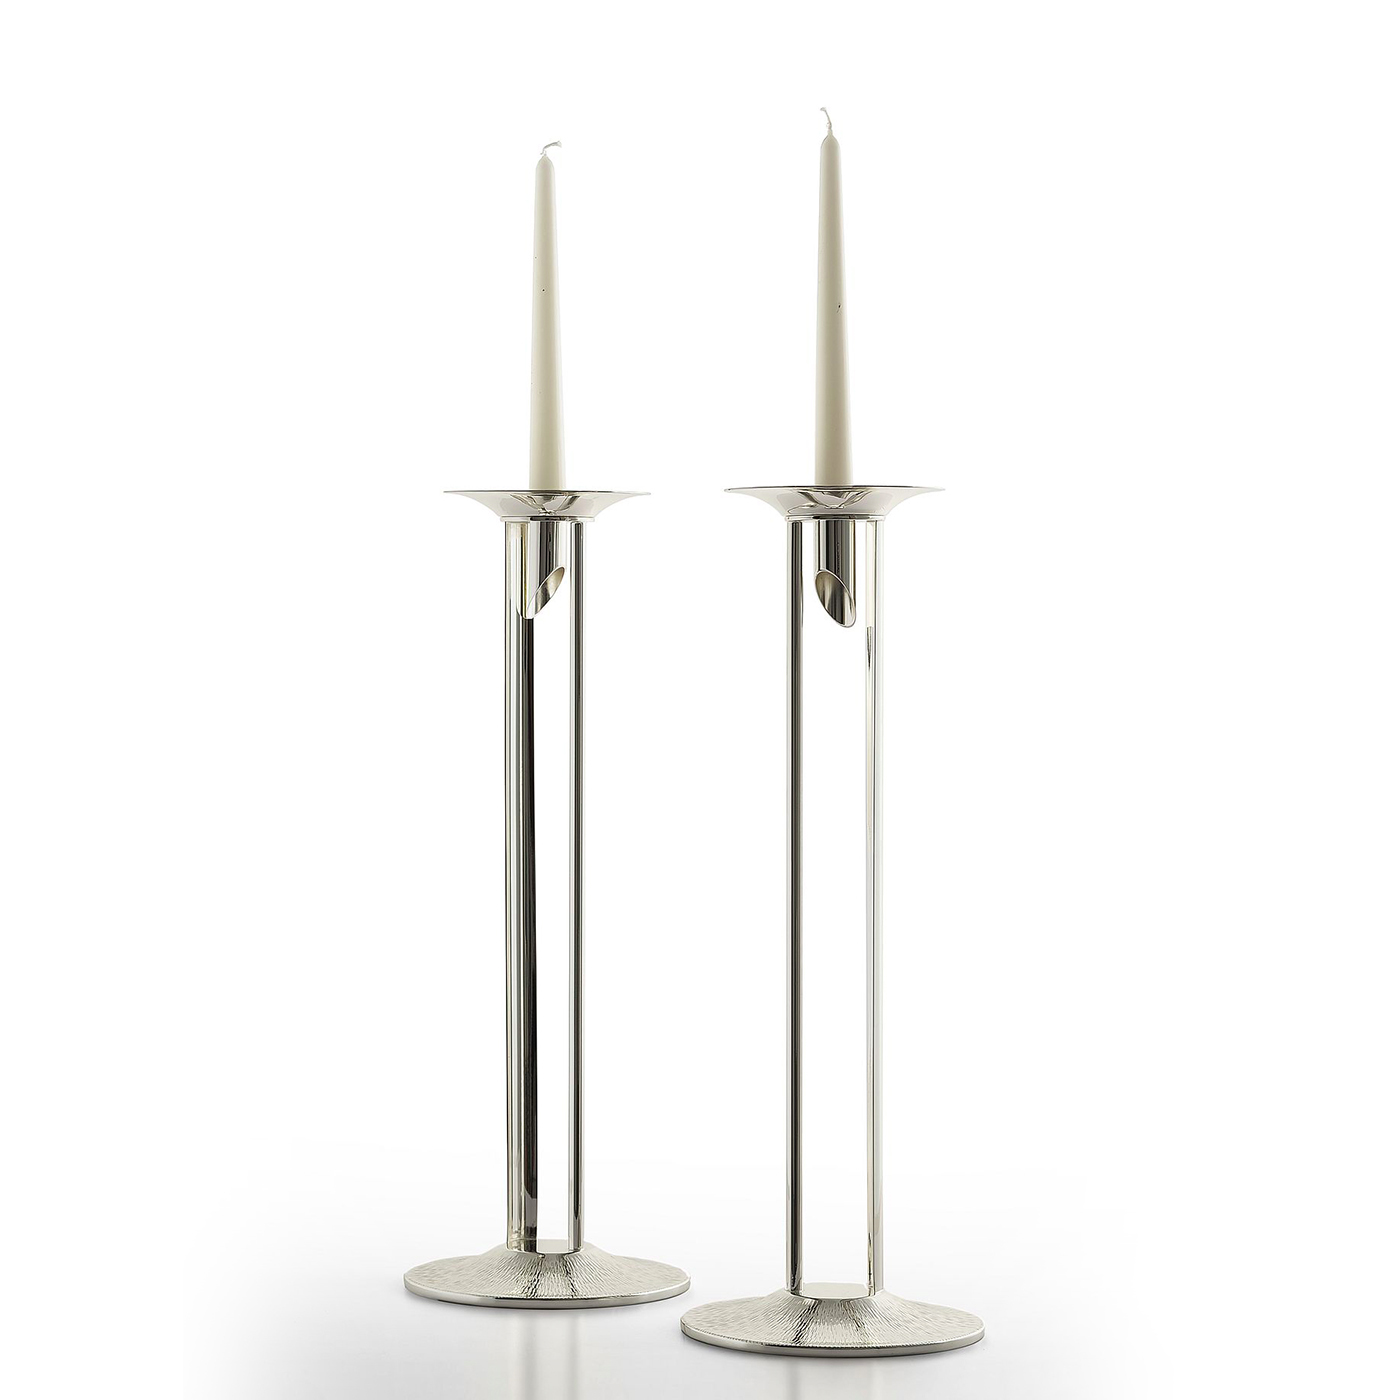 Disclosure Candleholders - This candle holder boasts an exquisitely modern and innovative design. The structure rests on a round base that has been turned and subsequently hammered by hand. It is topped with two pieces of semi-curved parallel plates that create a wonderful interplay of light that reflect off the smooth and hammered surfaces. The candle sits on a small hammered tray with a circular seat cut at the end at a 45-degree angle. Paired with a candle or as a unique sculpture, this piece will have highly decorative value showcased in any interior surface.  | Matter of Stuff